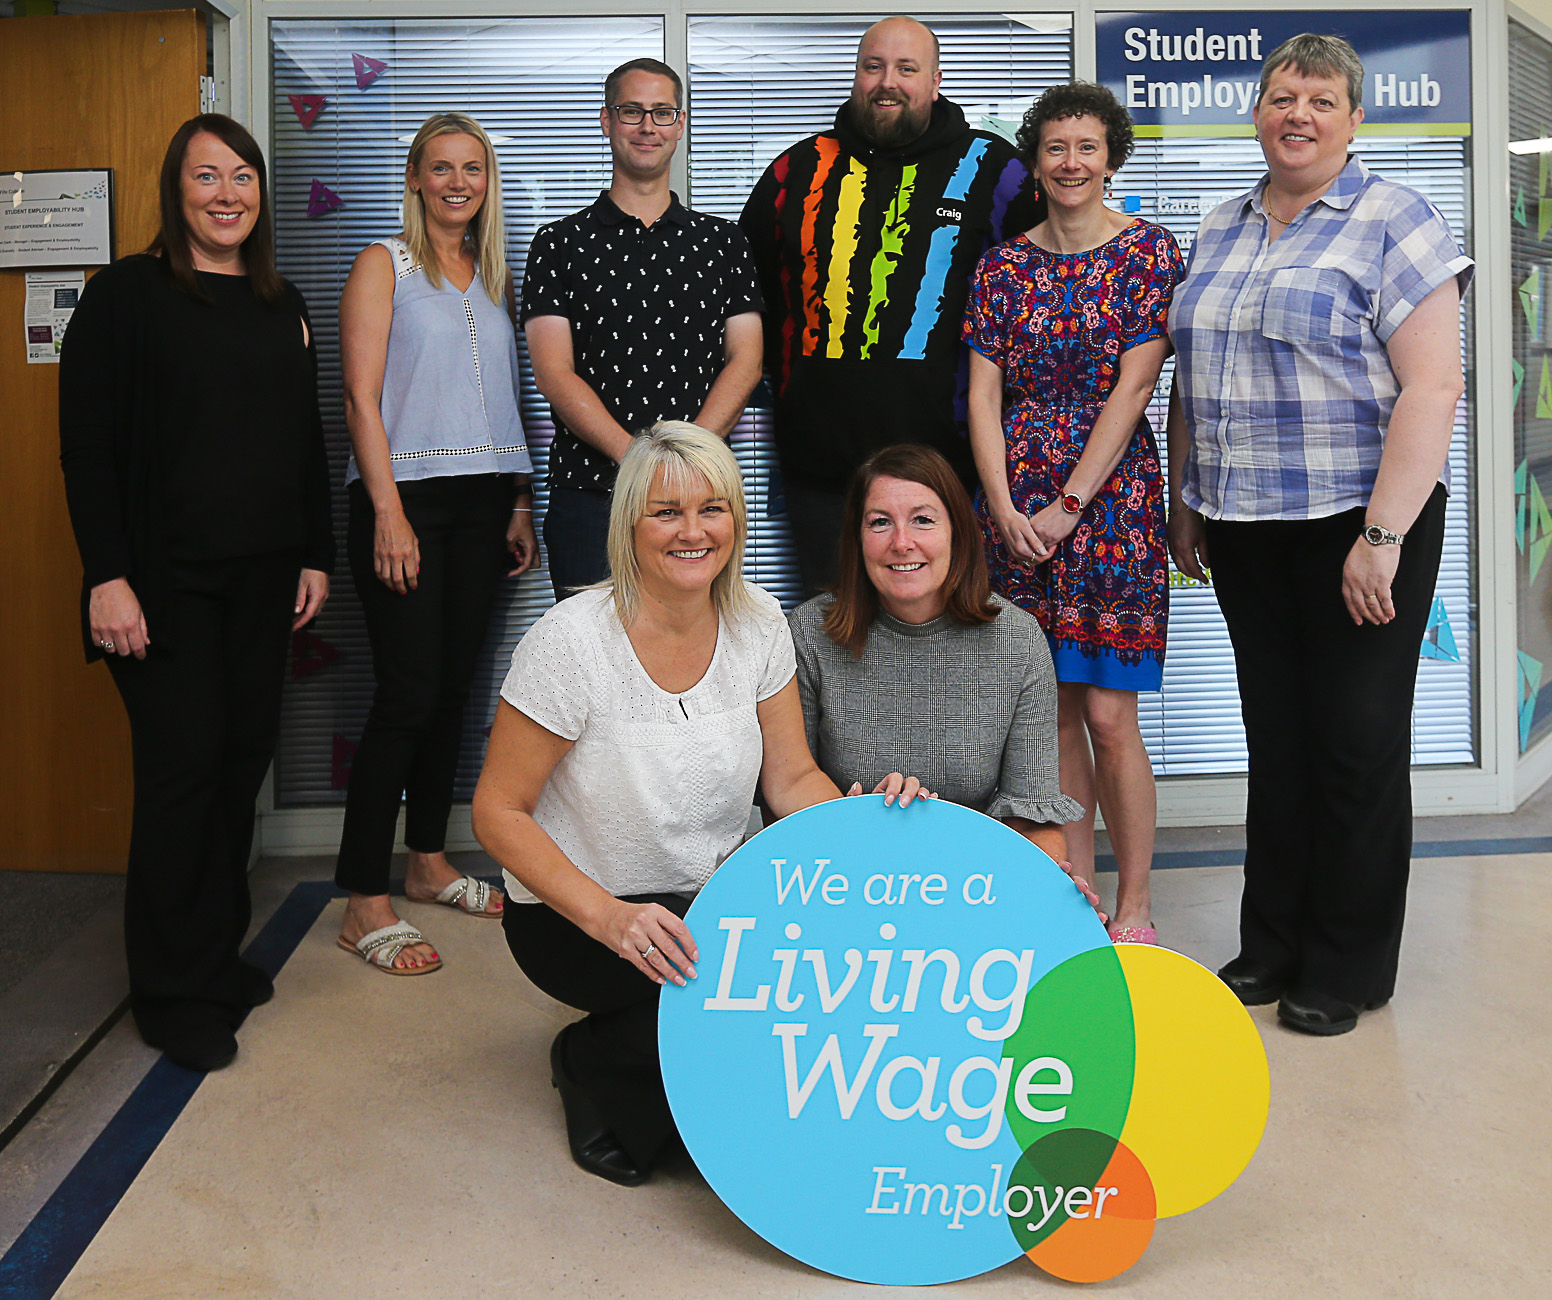 Fife College - A Living Wage Employer